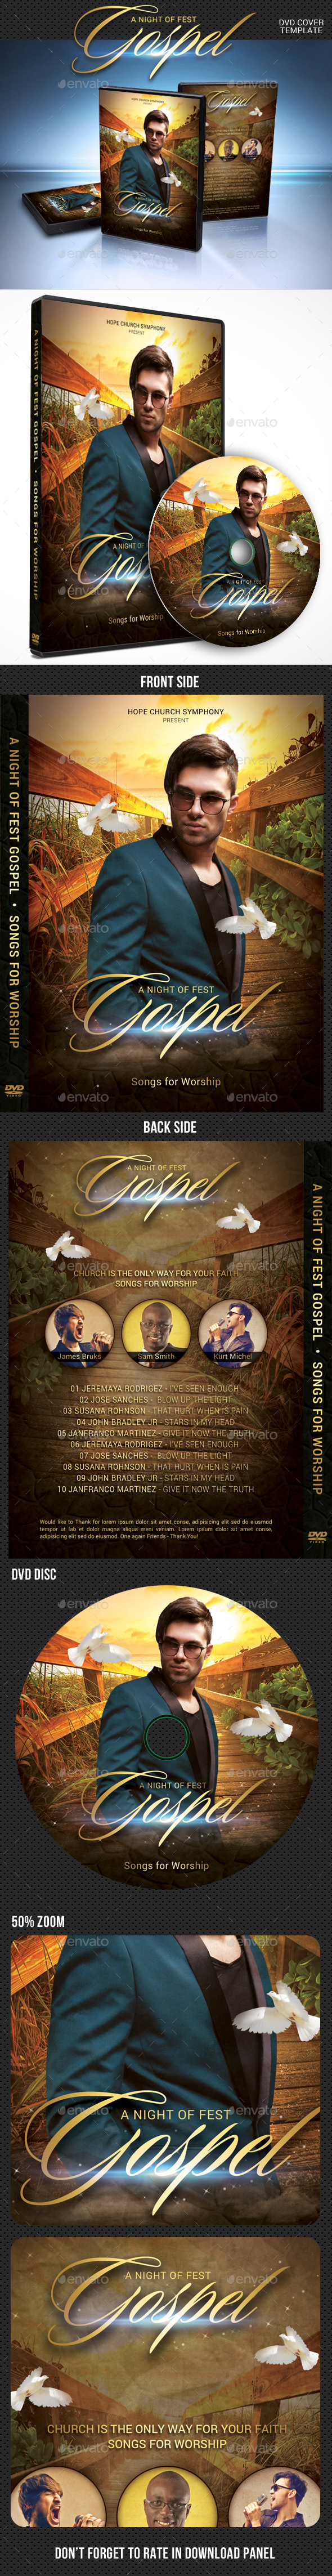 Gospel Fest DVD Cover Template - CD & DVD Artwork Print Templates